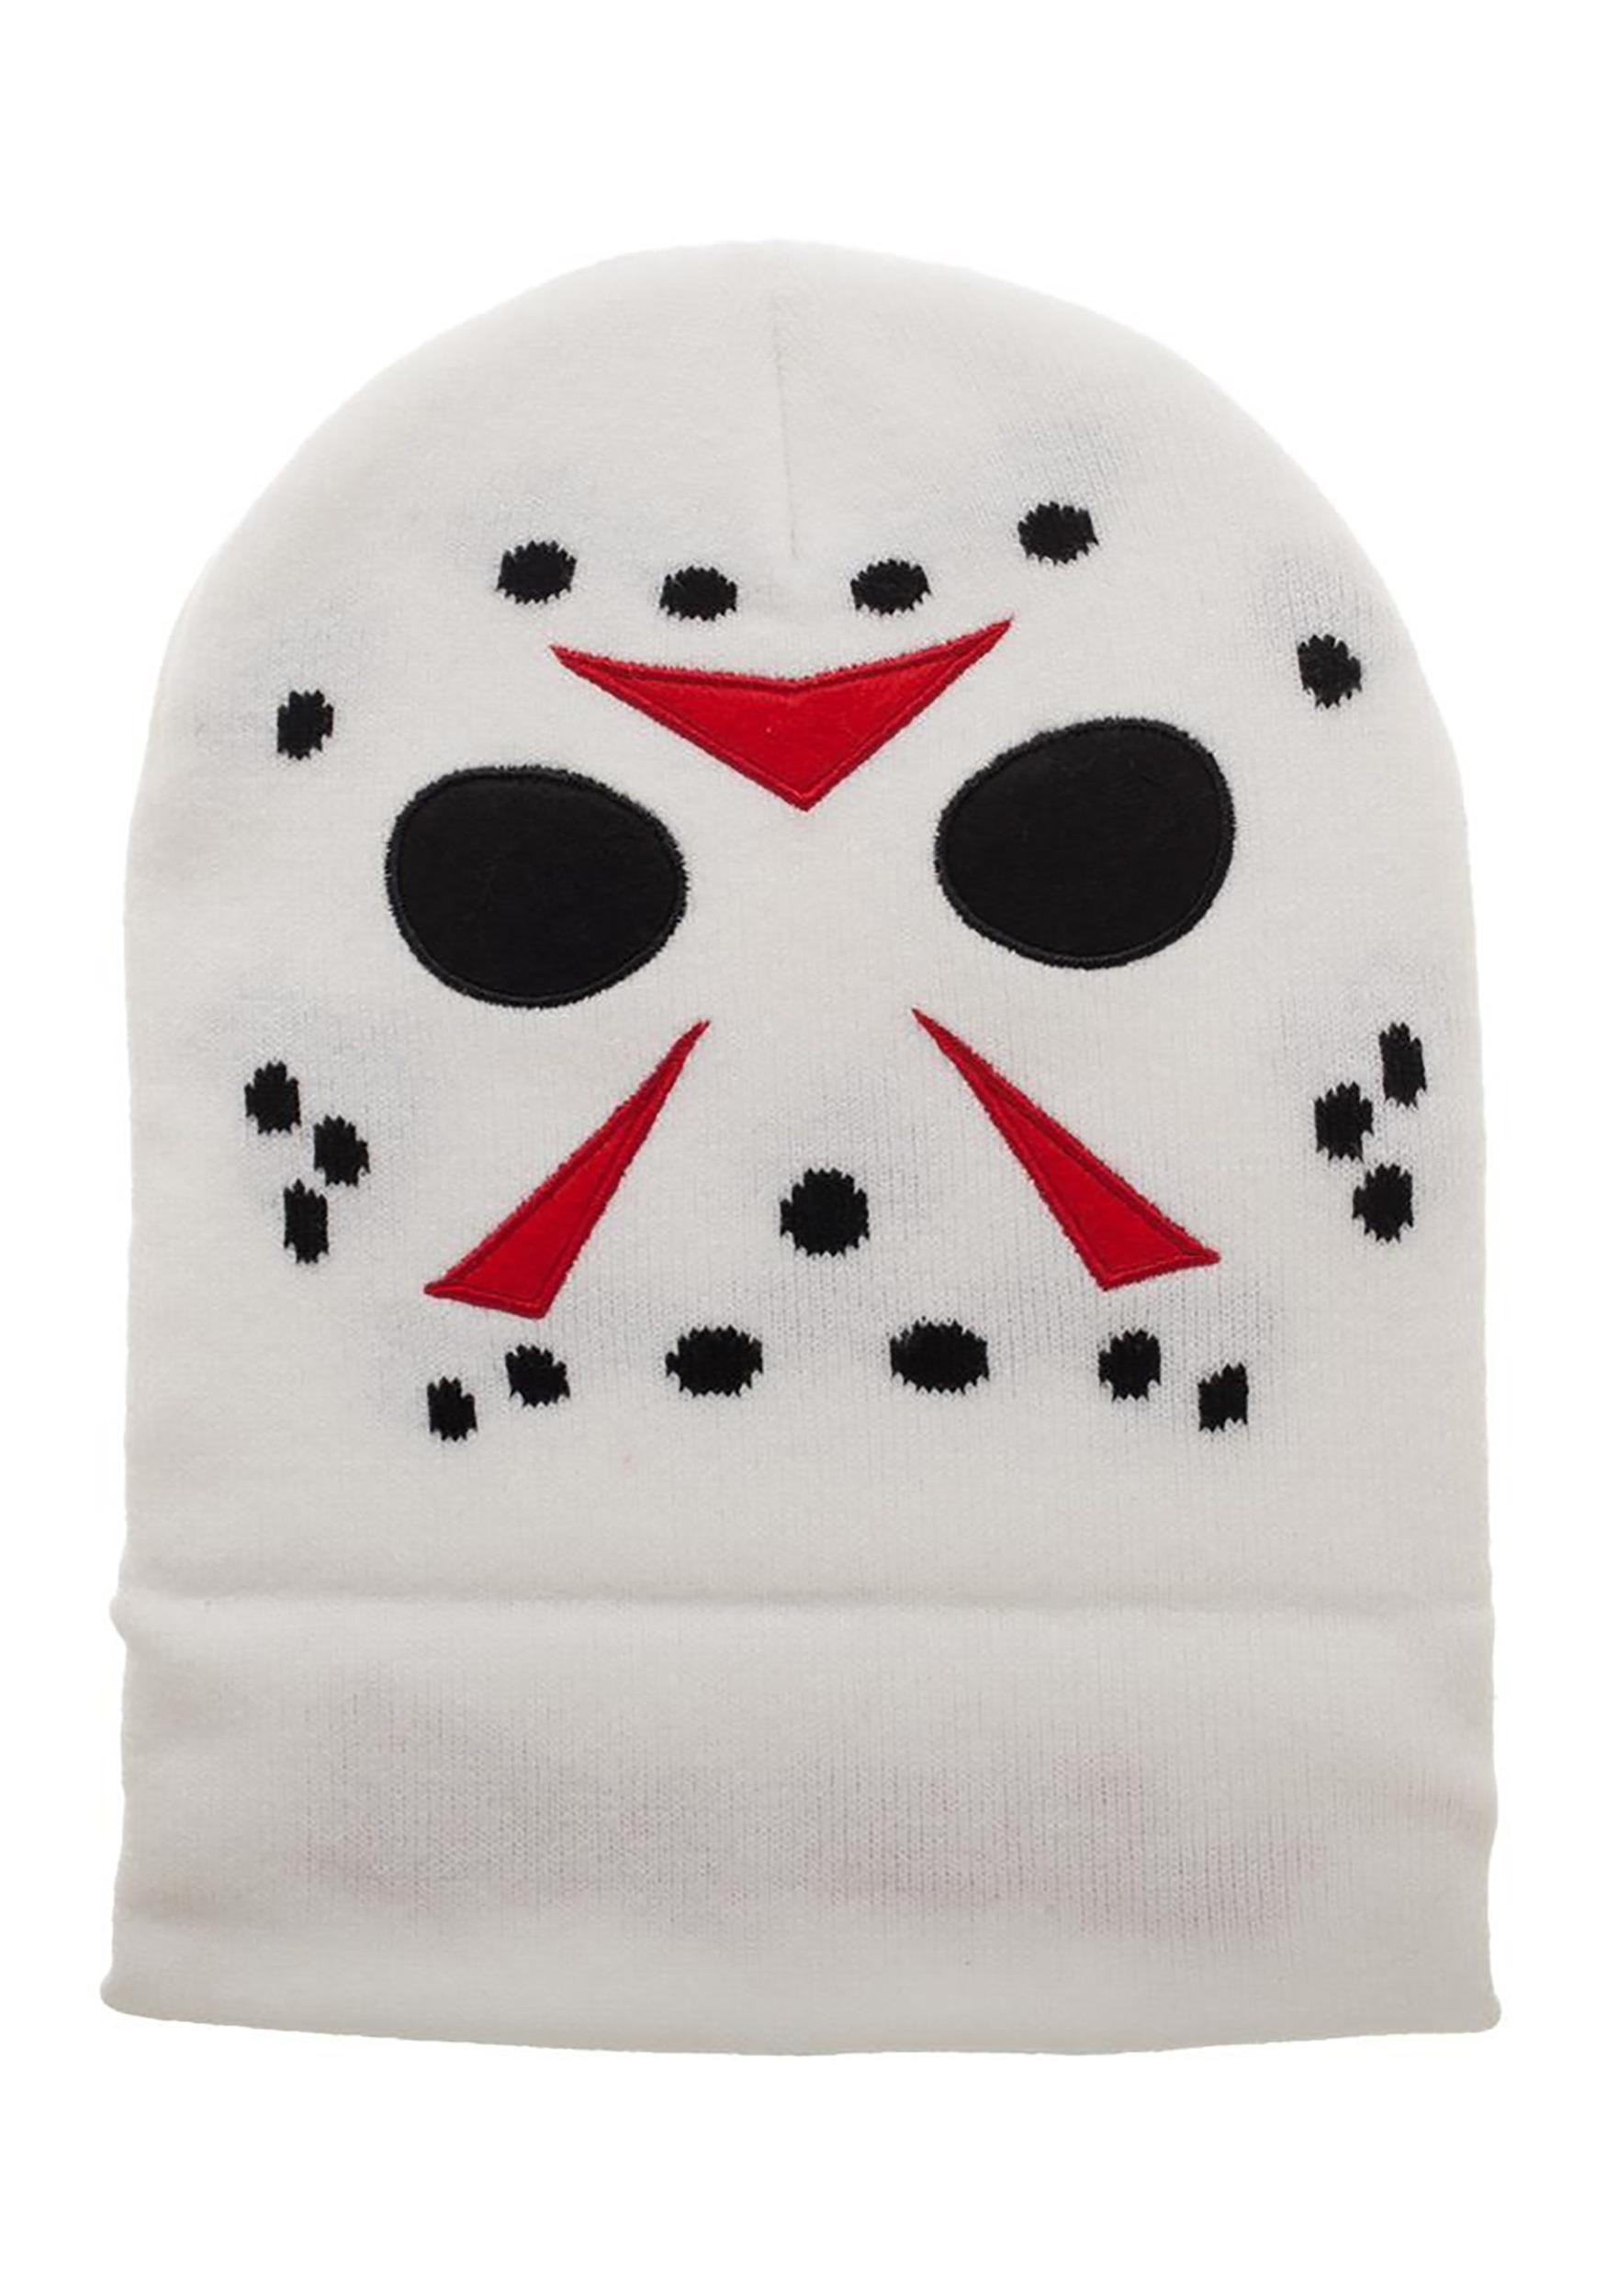 bfc3779a363 Jason Friday the 13th Cosplay White Beanie